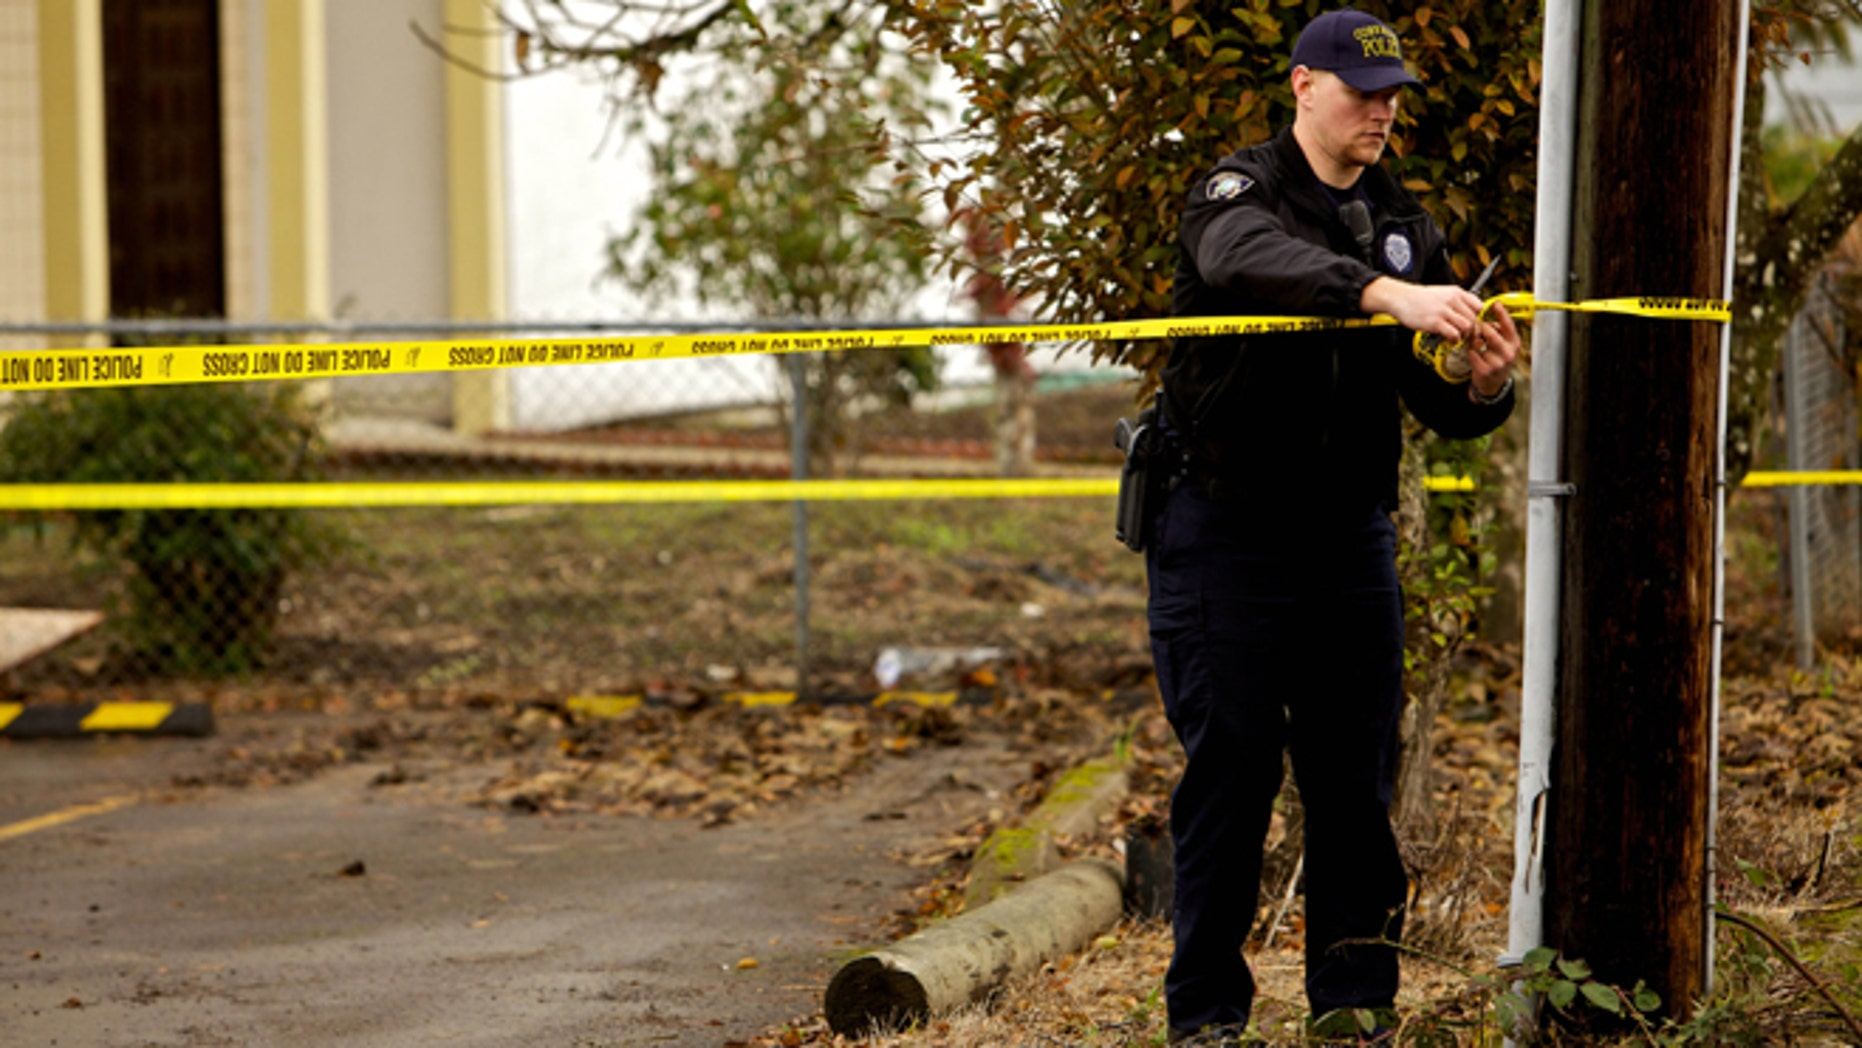 CORVALLIS, OR - NOVEMBER 28: A Corvallis police officer puts up police tape in front of the Salman Al Farisi Islamic Center on November 28, 2010 in Corvallis, Oregon. An arsonist set fire to the prayer center, which was sometimes attended by suspected Portland car bomber Mohamed Osman Mohamud. Mohamud, a Somali-born teenager, was arrested and charged with attempted use of a weapon of mass destruction when  he allegedly attempted to set off a car bomb during Christmas tree lighting ceremony in Pioneer Courthouse Square in Portland, Oregon. It was reported that civilians were not at risk because the bomb was supplied to him by undercover federal agents and the explosives were inert.   (Photo by Craig Mitchelldyer/Getty Images)